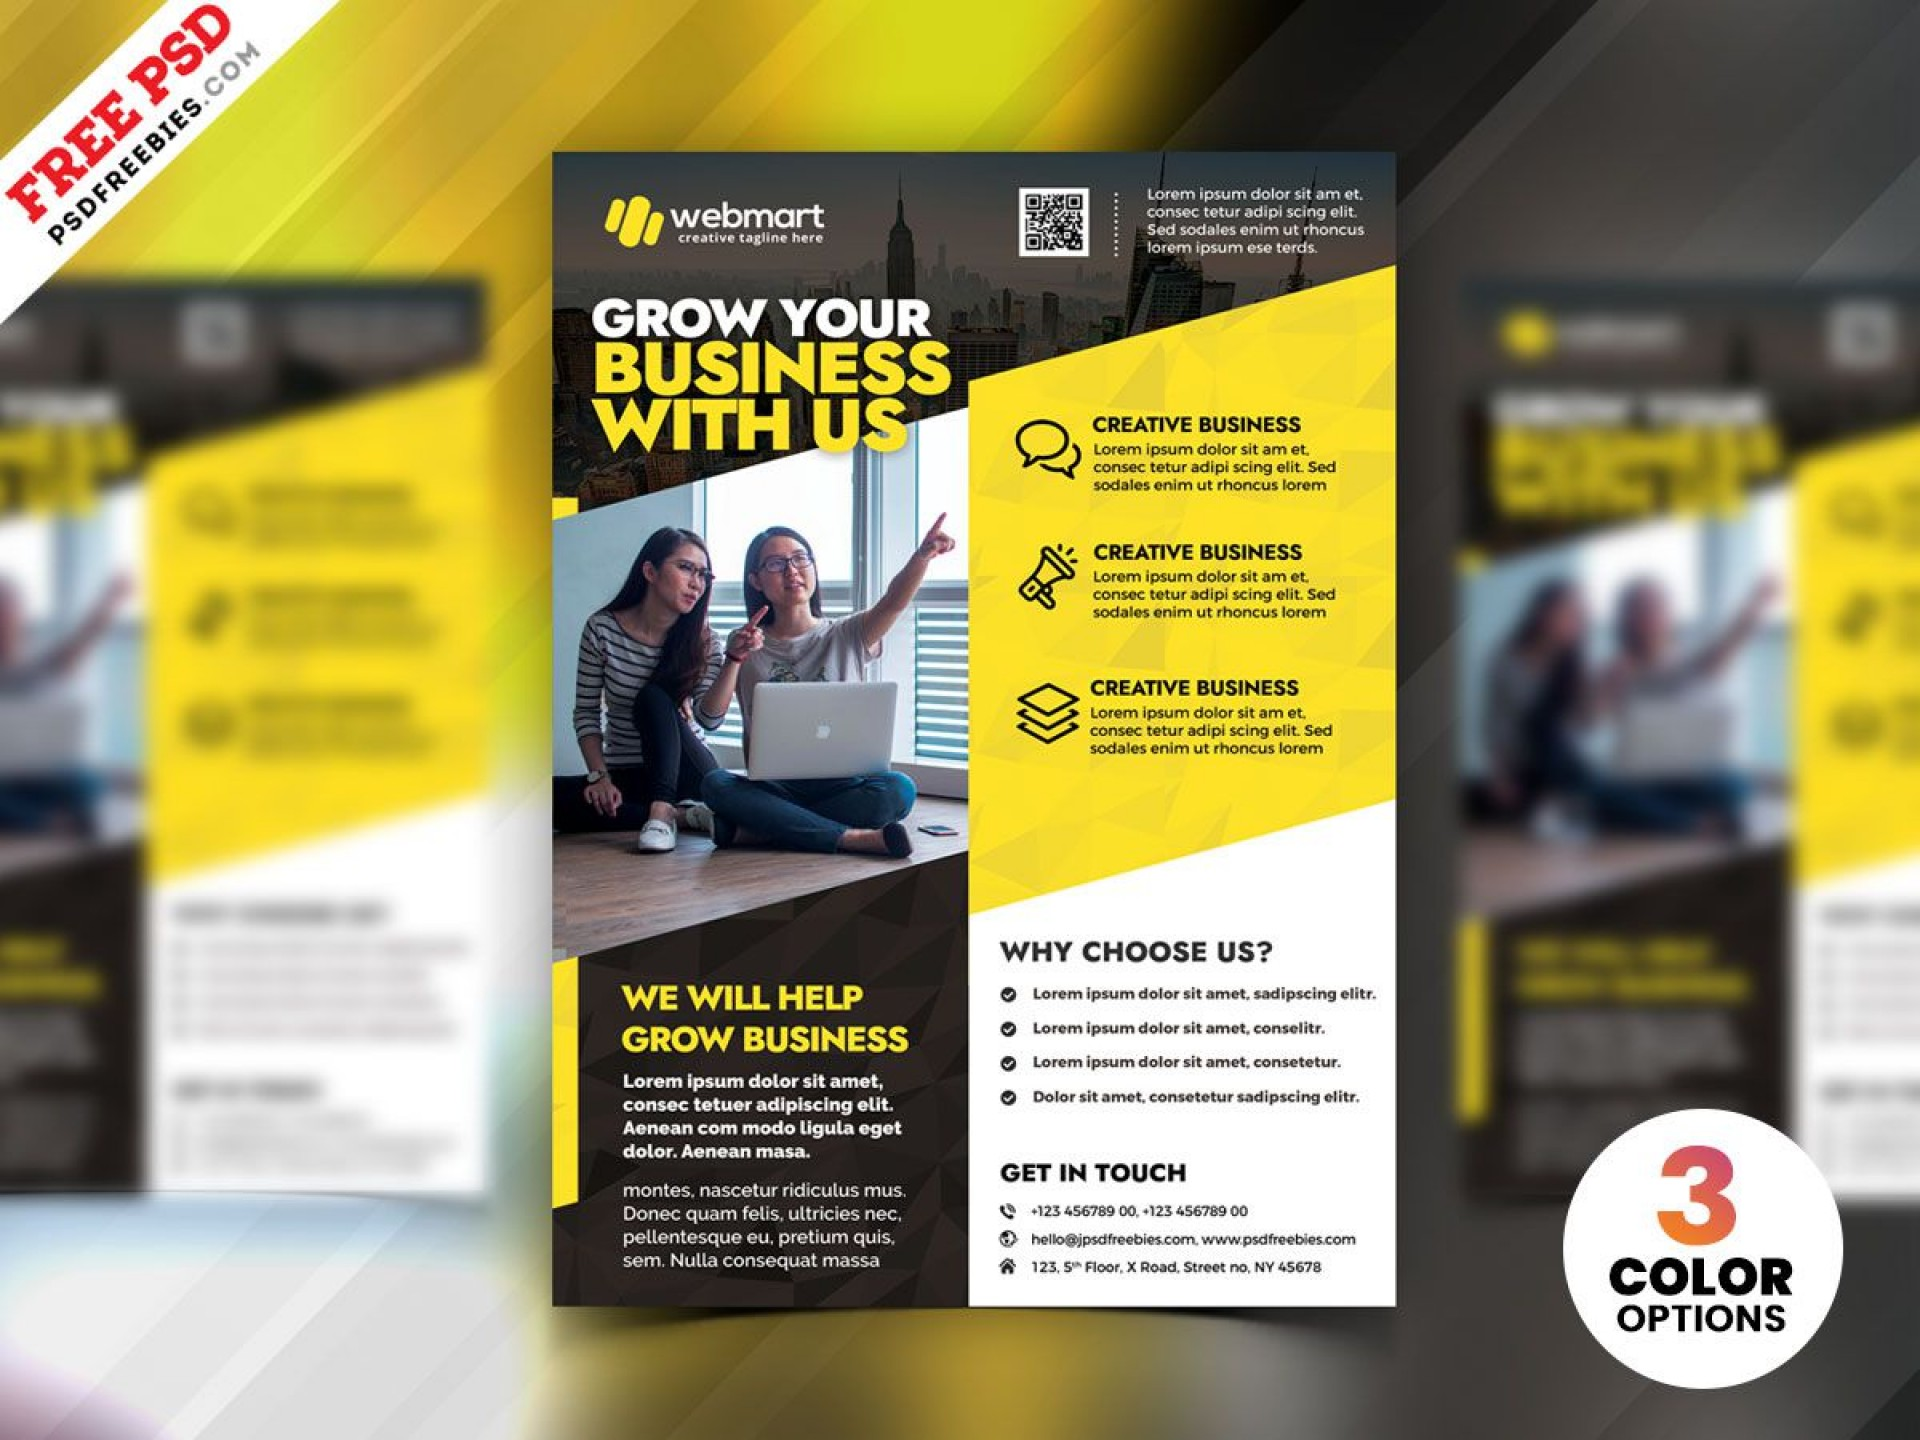 005 Archaicawful Free Flyer Design Template High Definition  Templates Online Download Psd1920